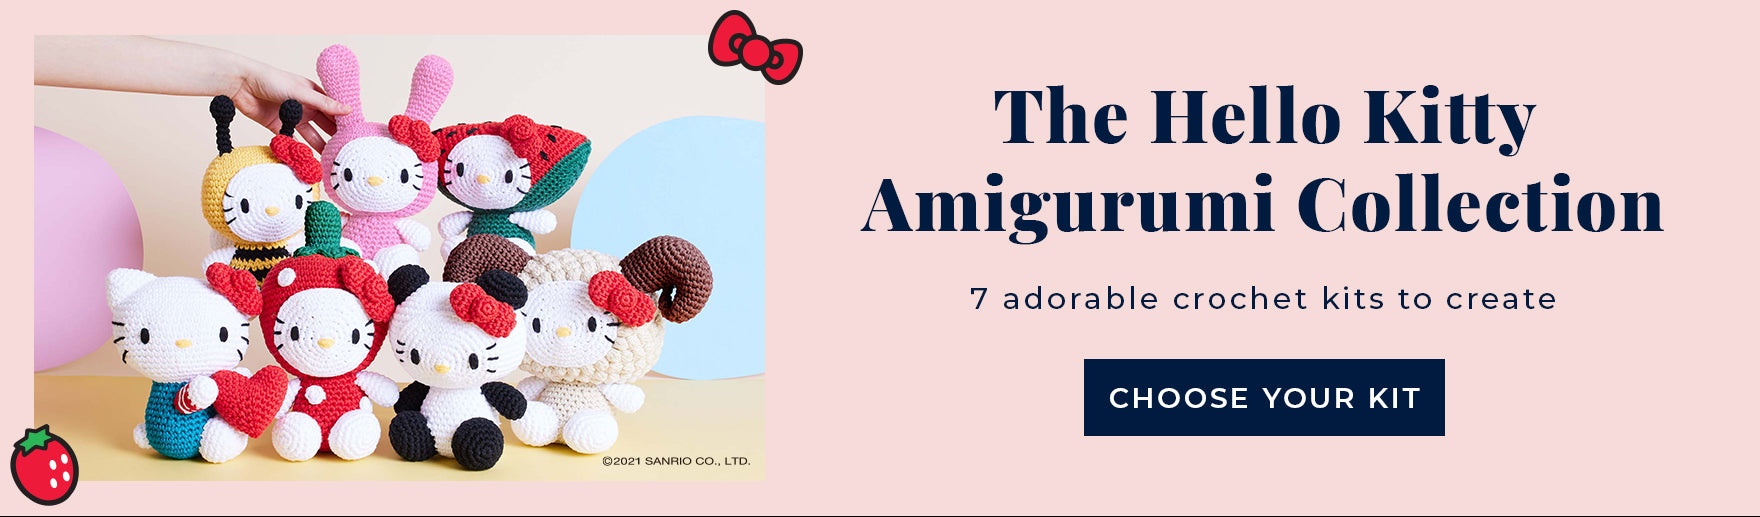 Shop the Hello Kitty Amigurumi crochet kit collection at Stitch & Story